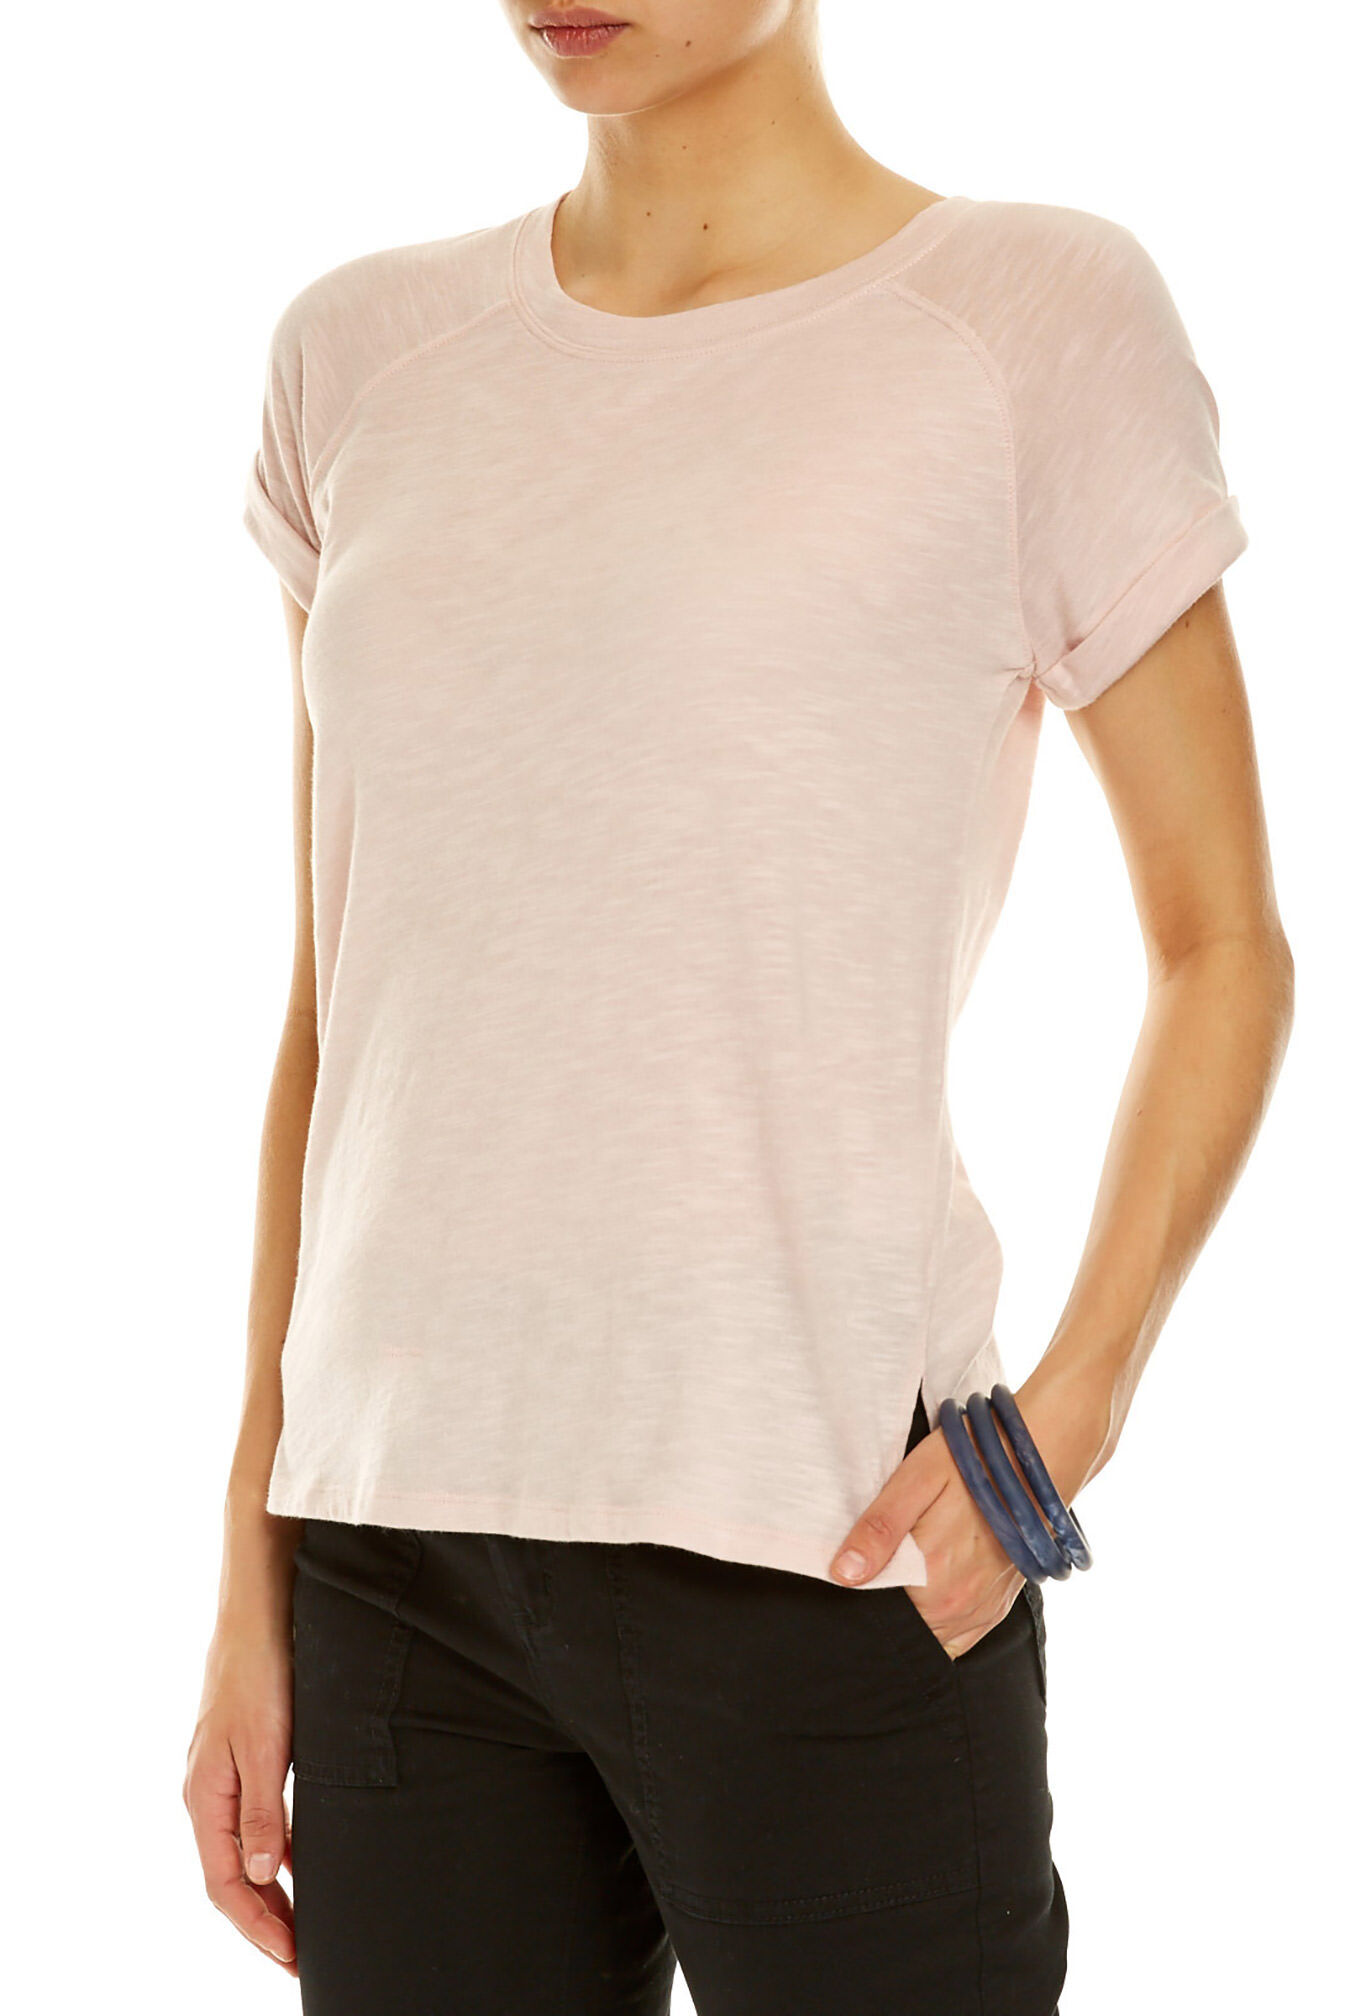 NEW-Sportscraft-WOMENS-Tabitha-Relaxed-Tee-Tops-amp-Blouses